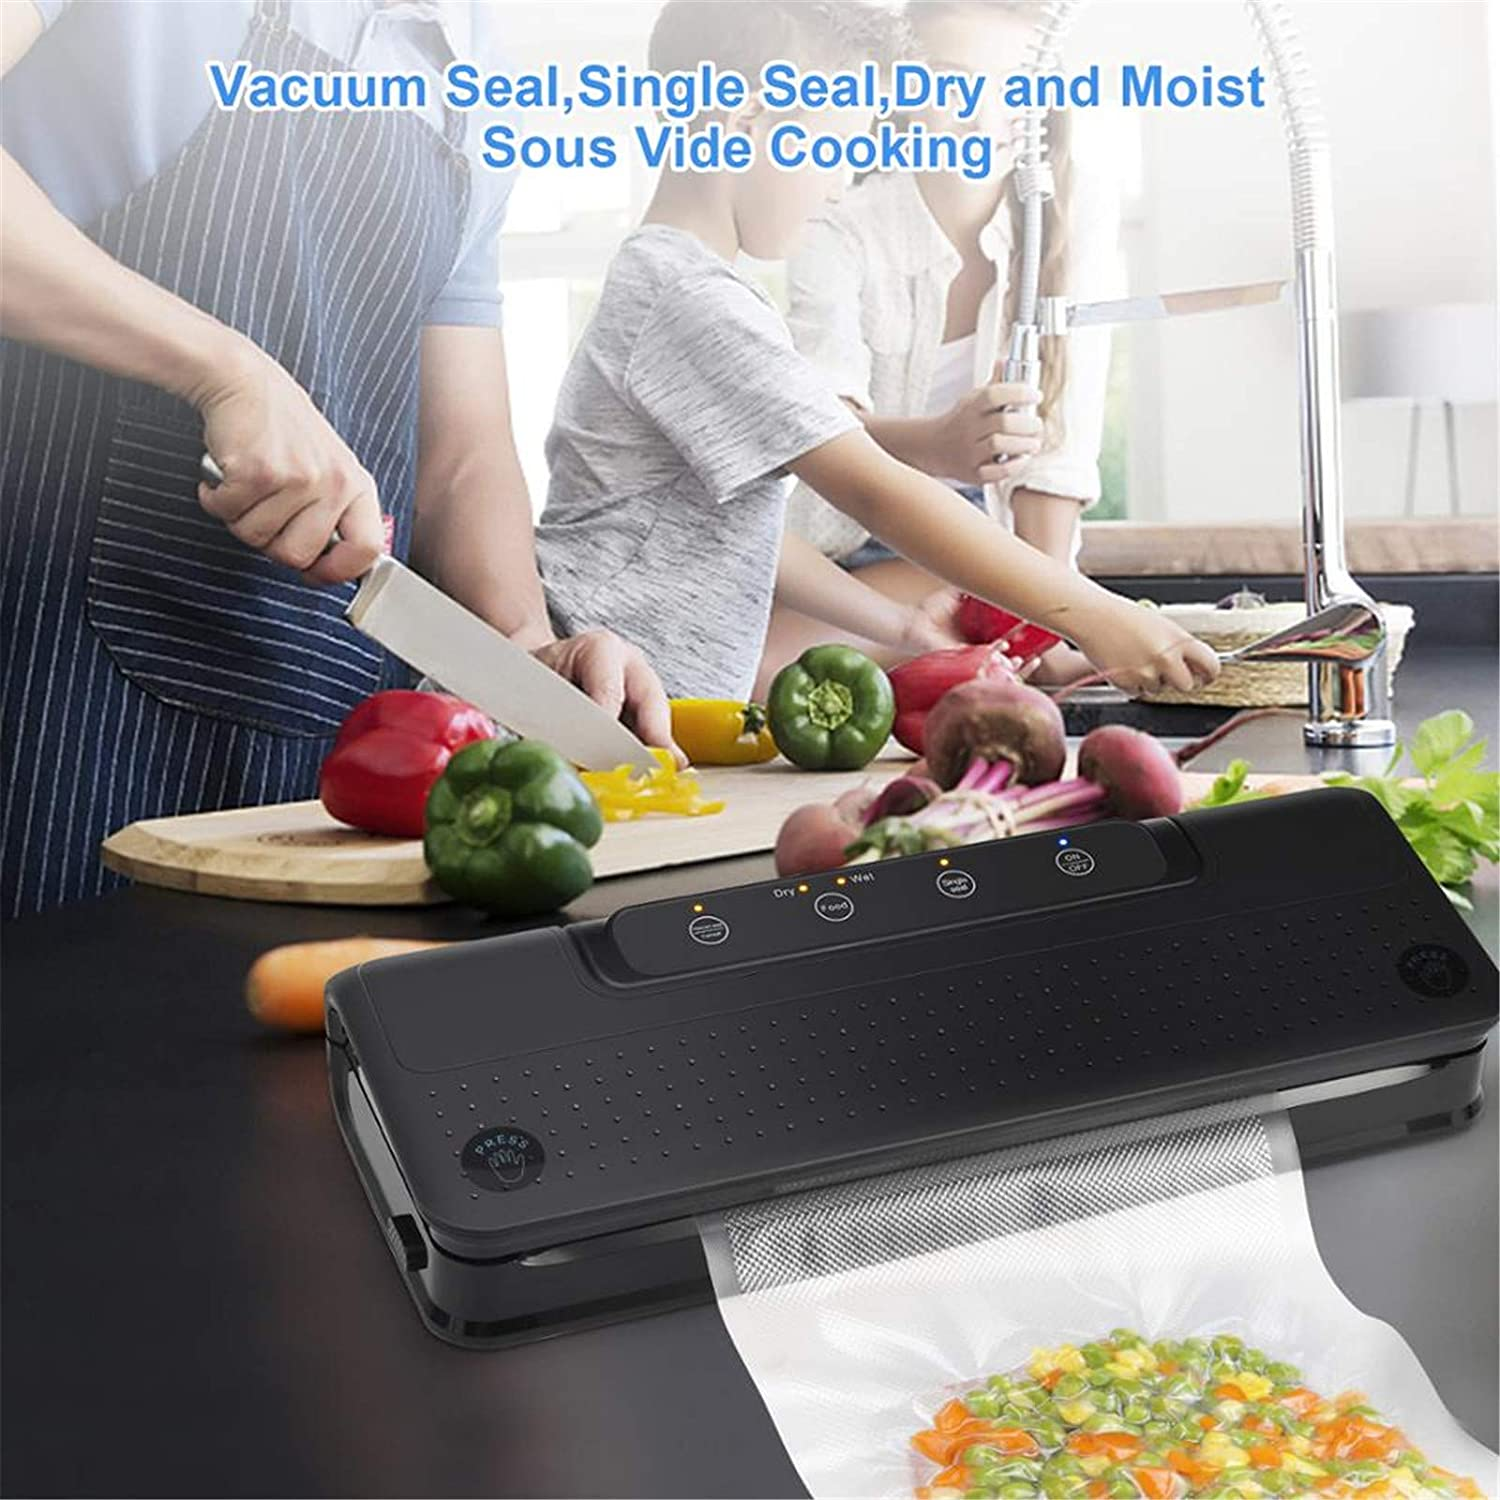 SXPC Portable électrique Automatique Cuisine Mini Handheld Foodsaver Vide Scellant Machine,Bleu Black